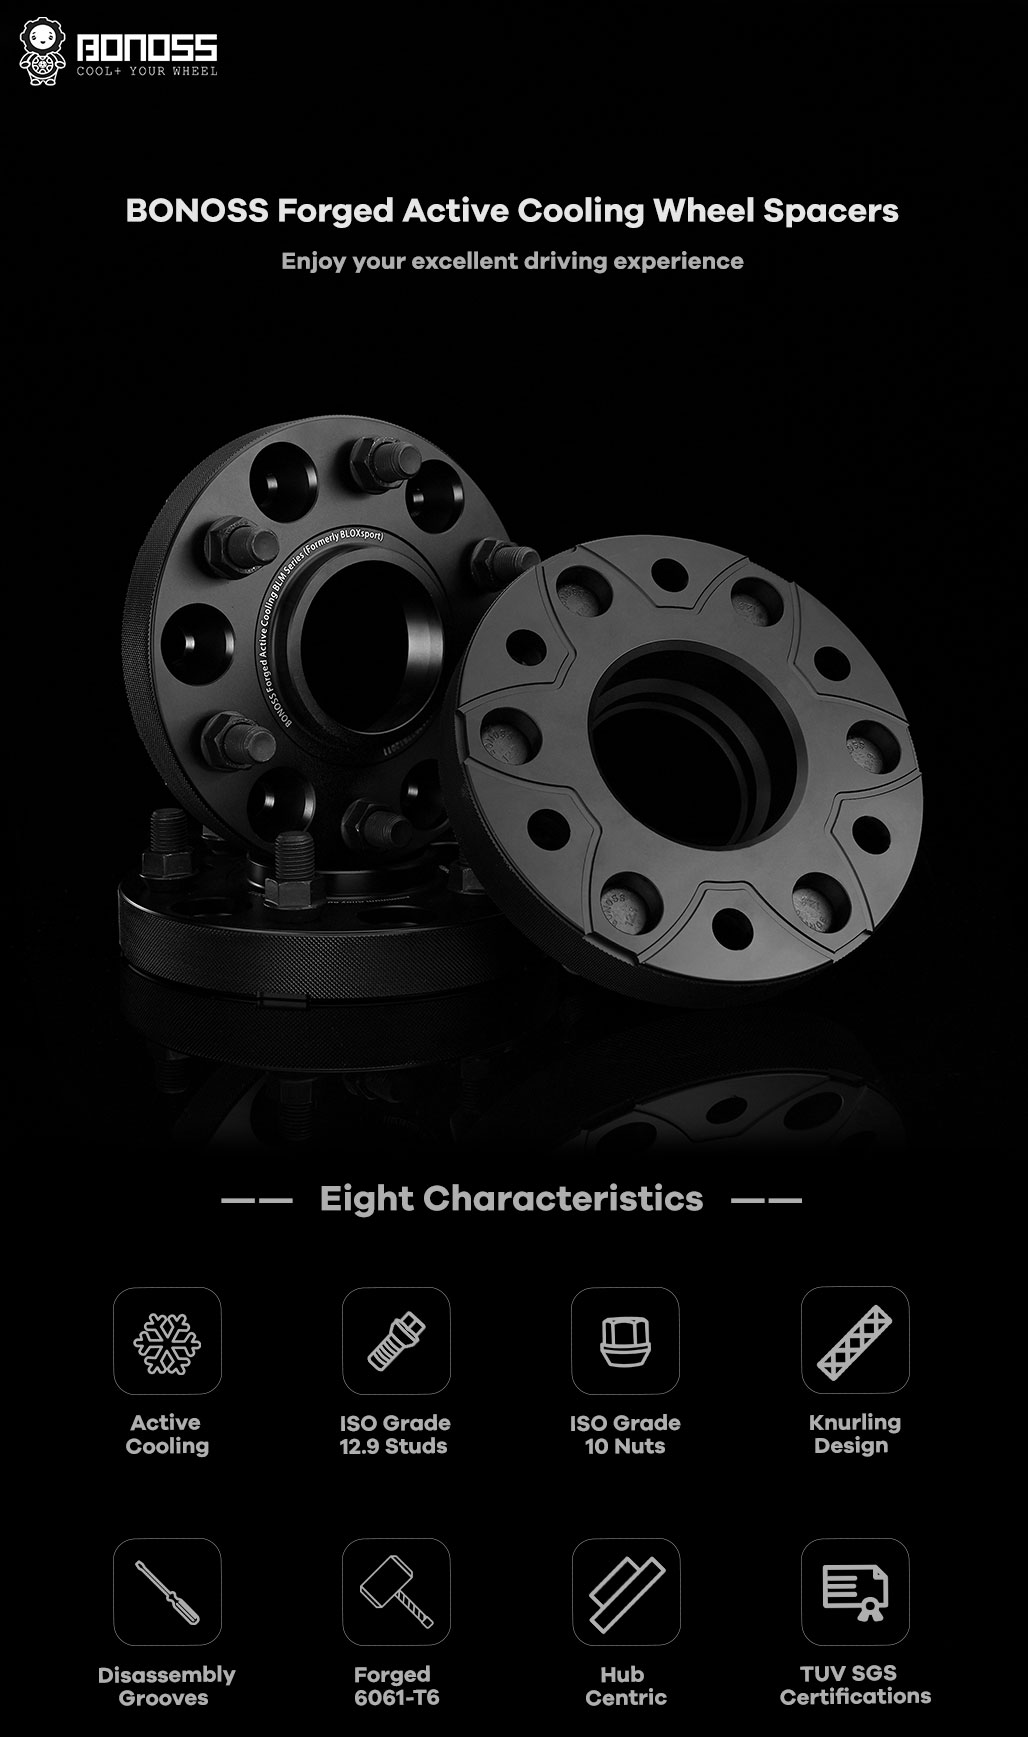 BONOSS-forged-active-cooling-wheel-spacer-for-gmc-sierra-1500-6x139.7-78.1-14x1.5-6061t6-by-grace-1